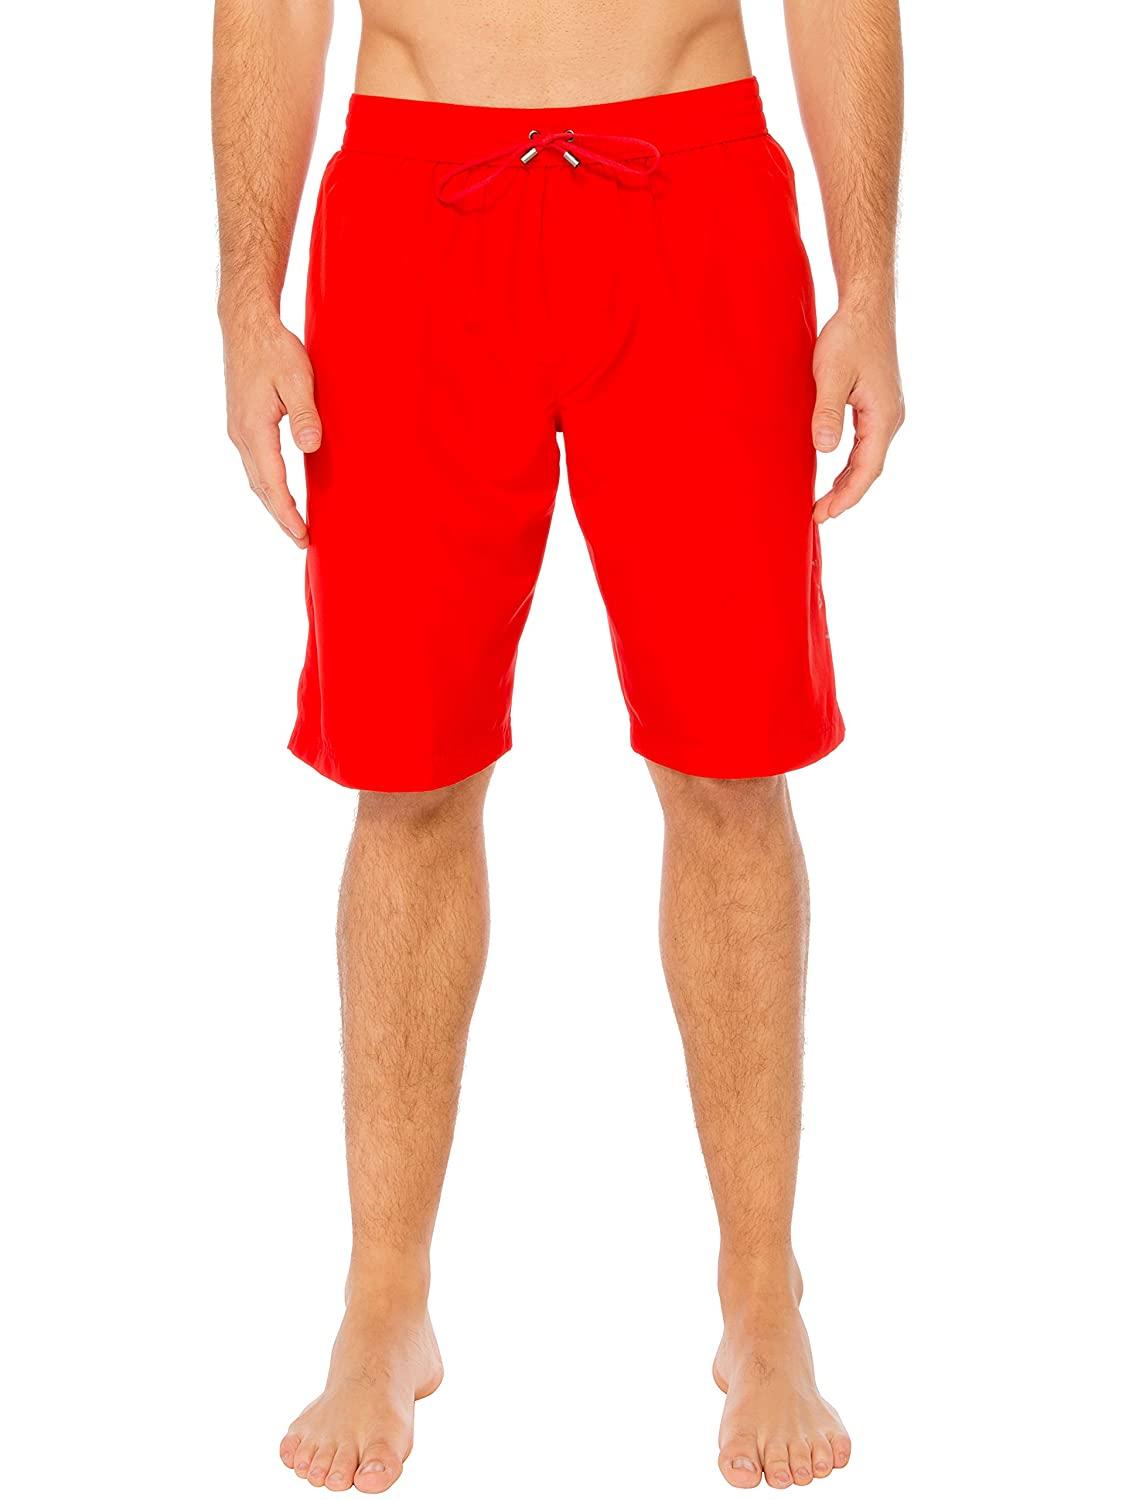 Silwave Men's Classic Swim Trunk